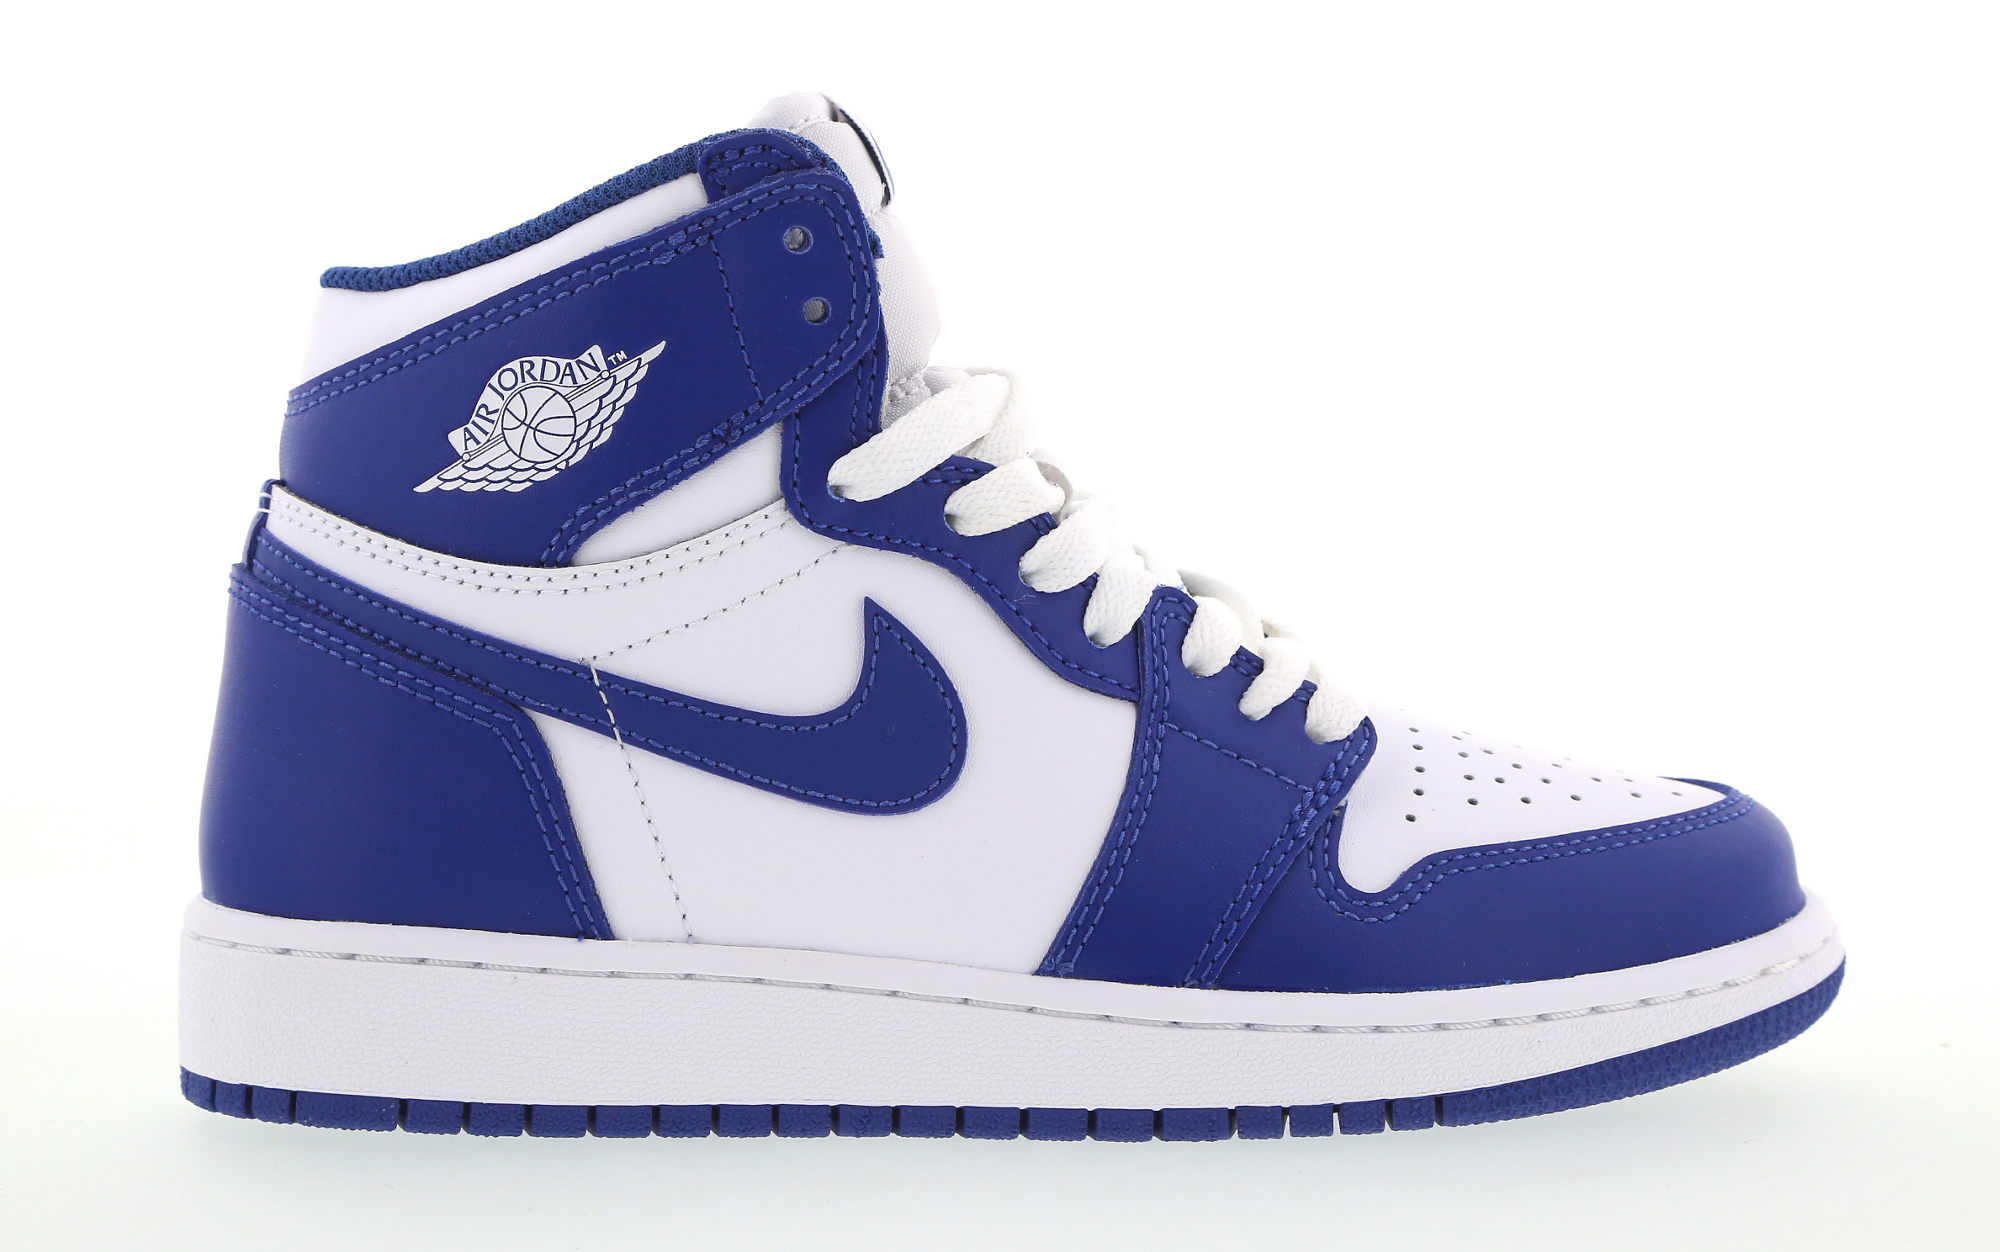 Air Jordan 1 Storm Blue GS Profile